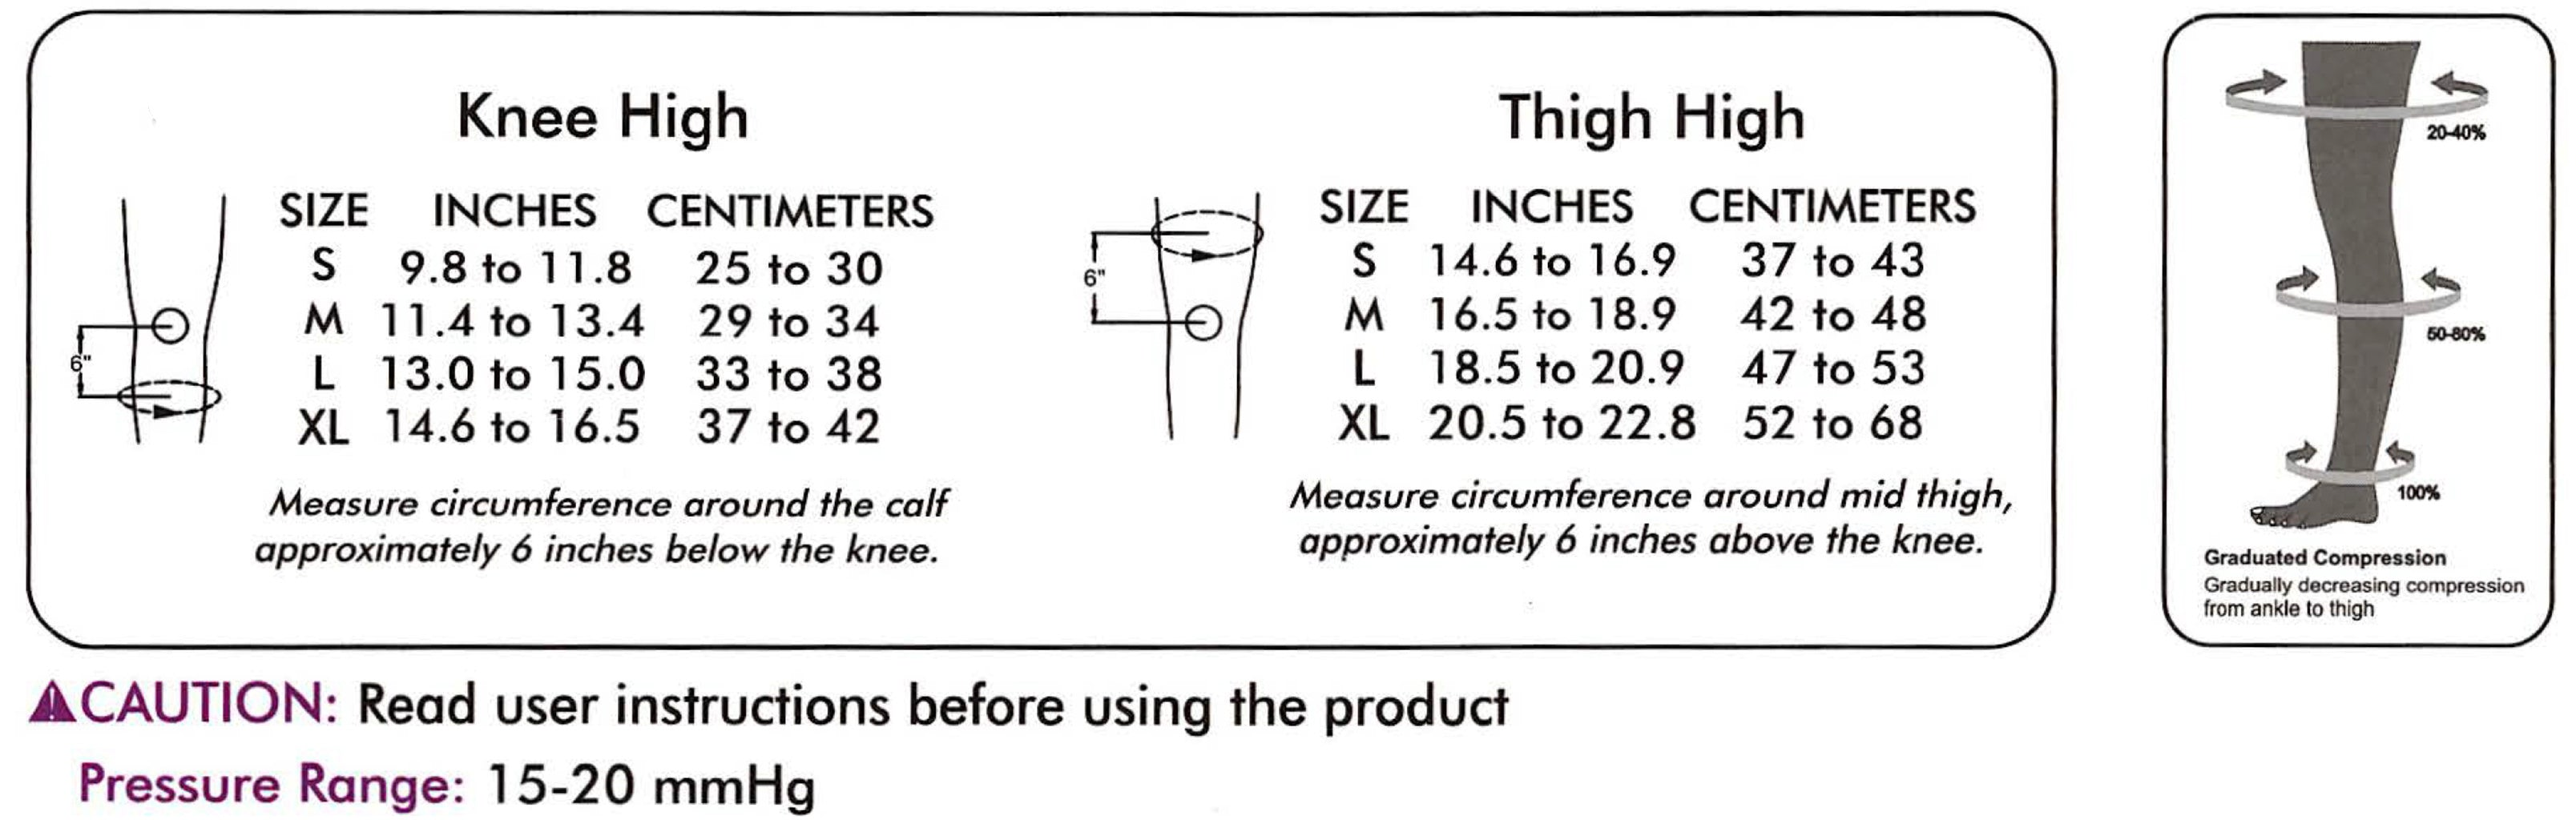 Anti Embolism Compression Stockings (D.V.T. Prophylaxis) Class 1 (Pair) Size chart